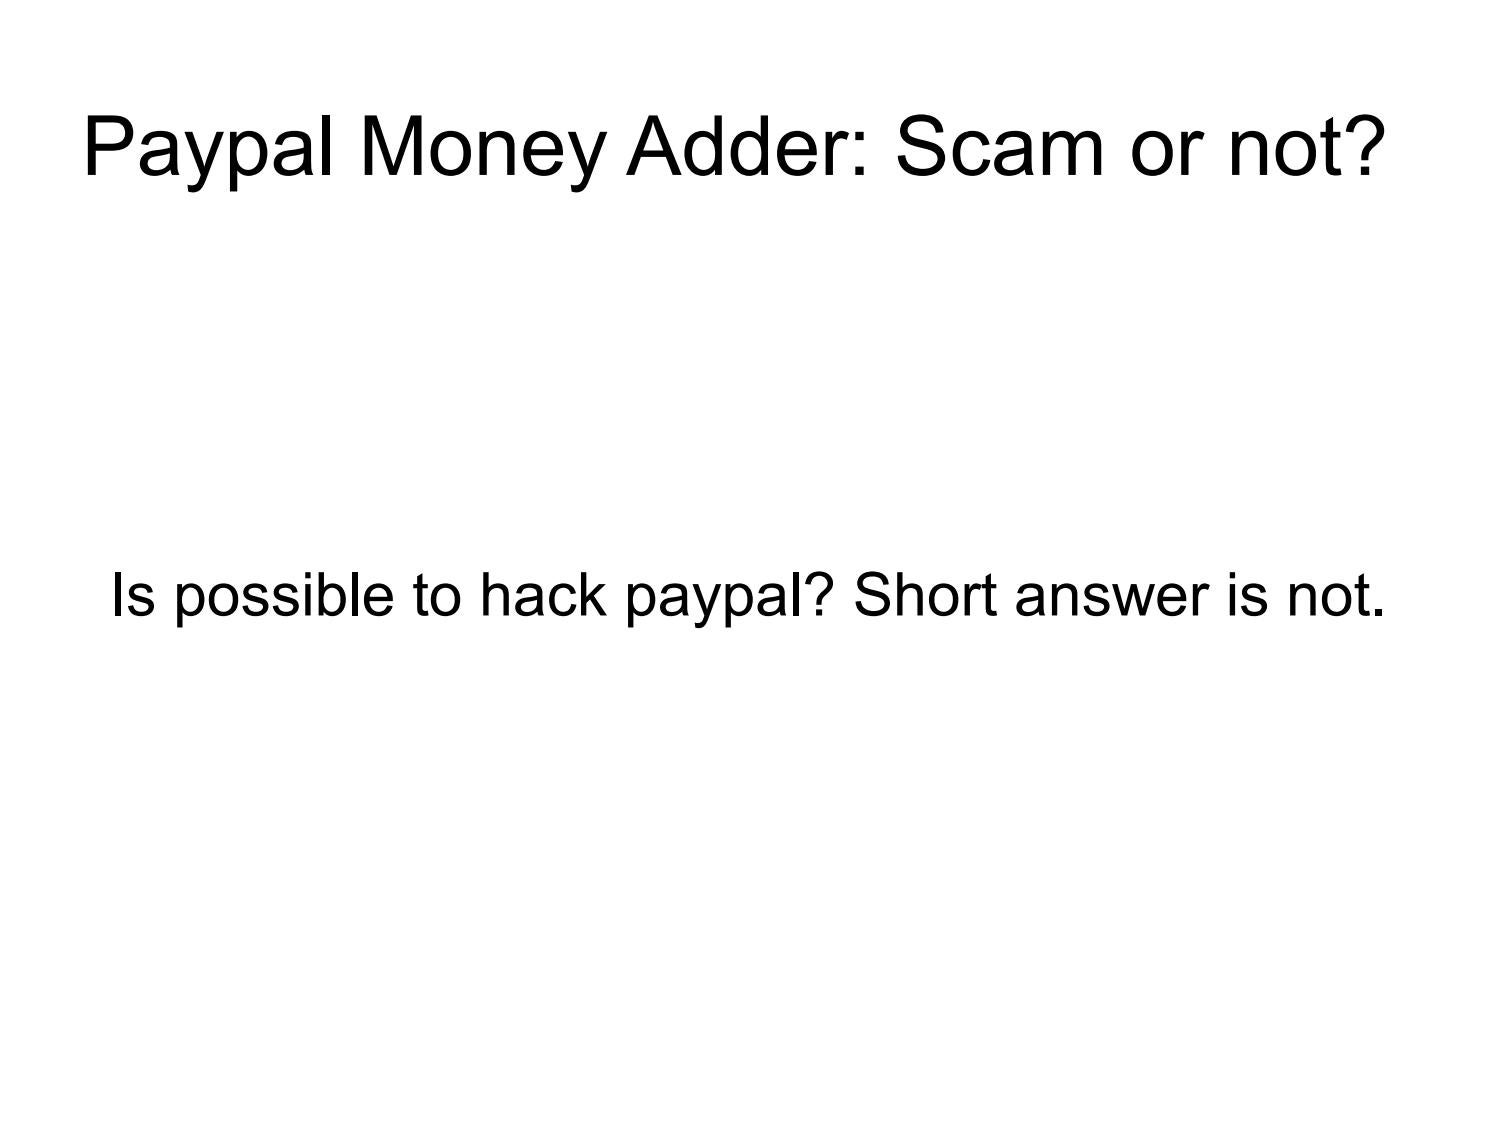 Paypal hack: Why this is scam by Cleberl1 - issuu